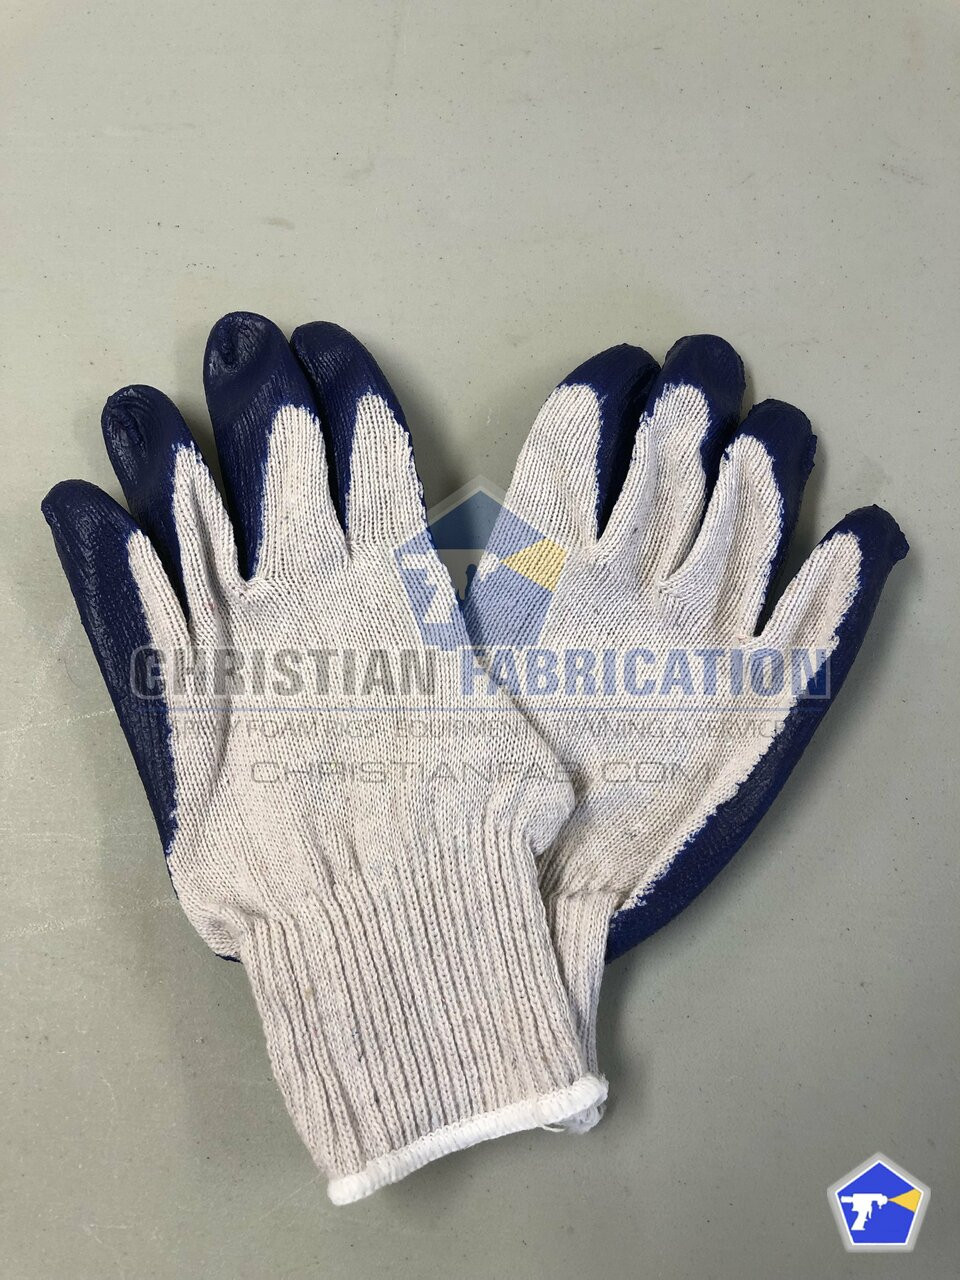 Blue Latex Rubber Coated Fingers & Palm Work Gloves (Size Med/Large) 12 Pairs